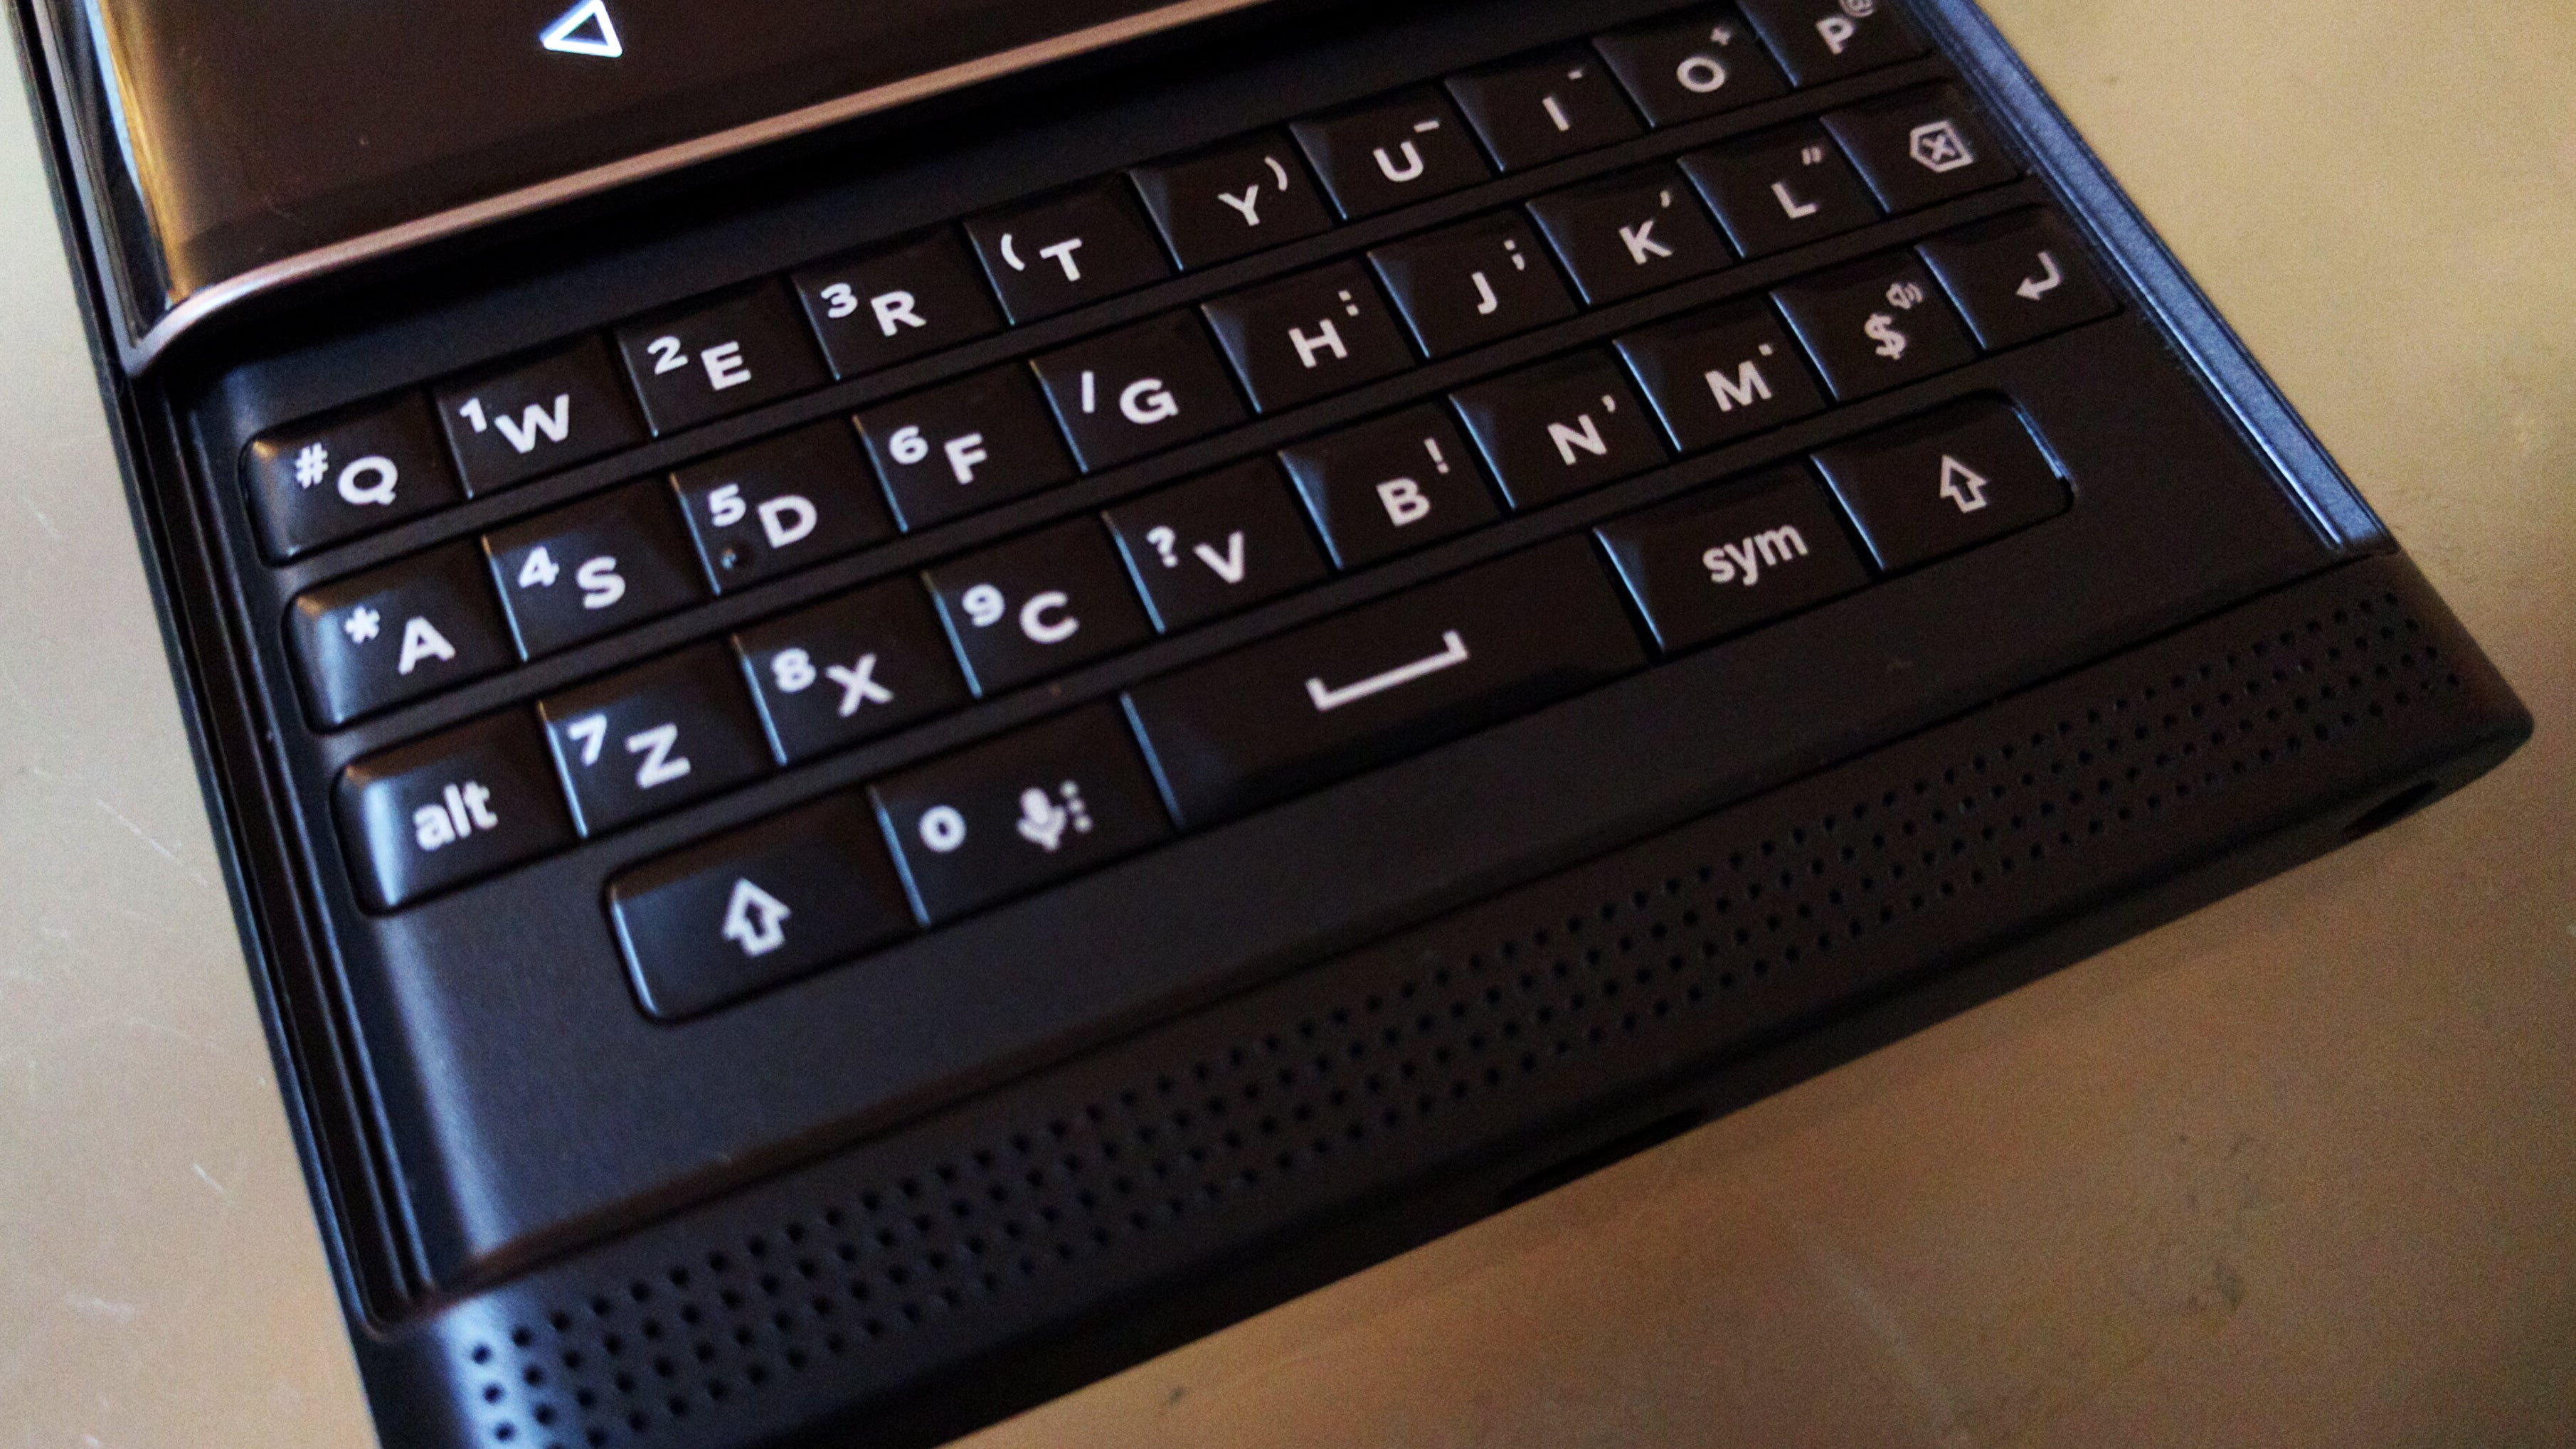 The Blackberry Classic May Be Dead But Keyboard Lives On Trusted Reviews